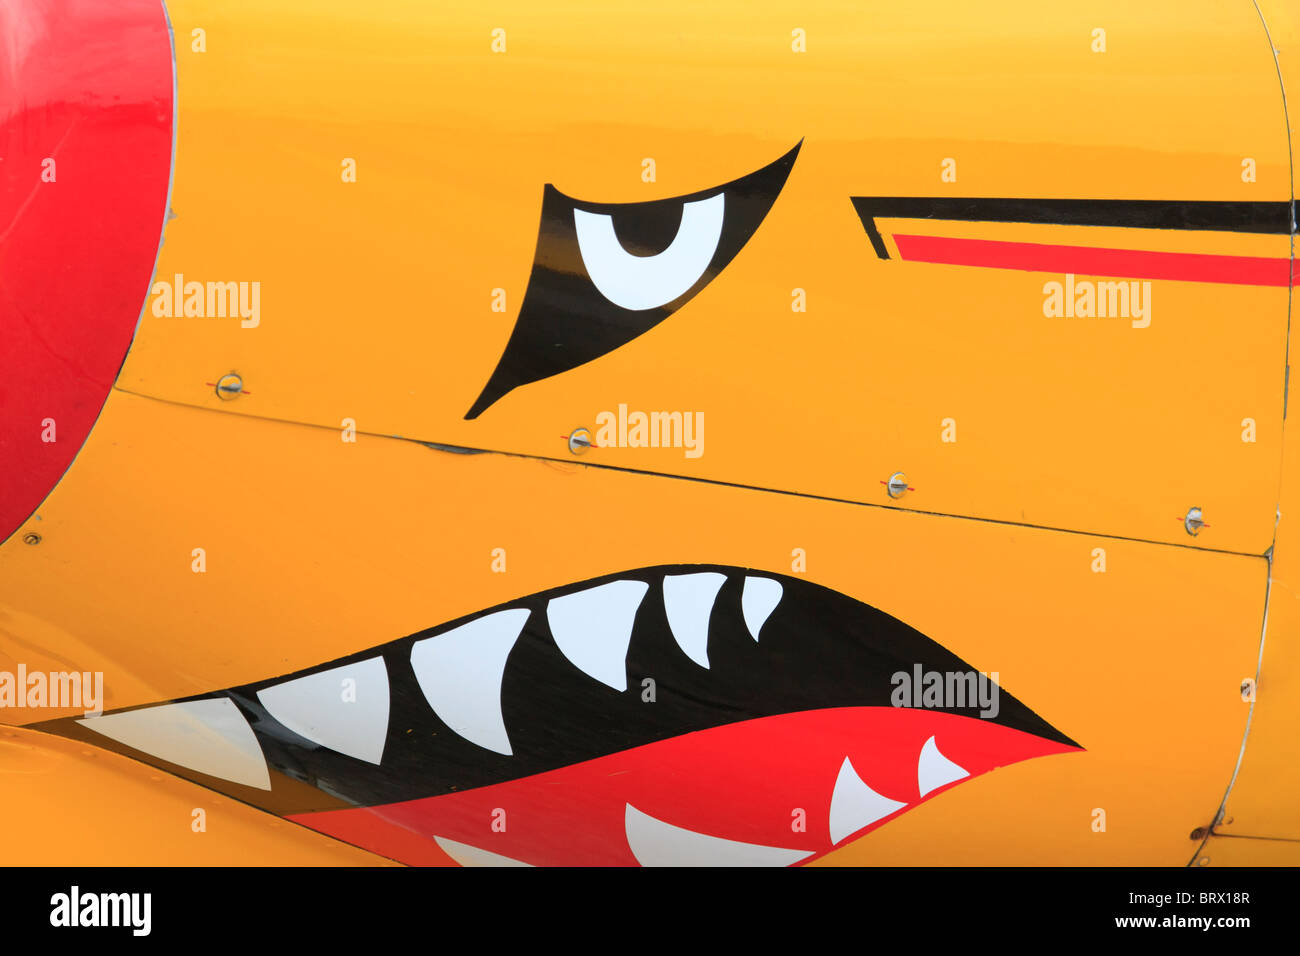 Snarling face on front of aeroplane - Stock Image